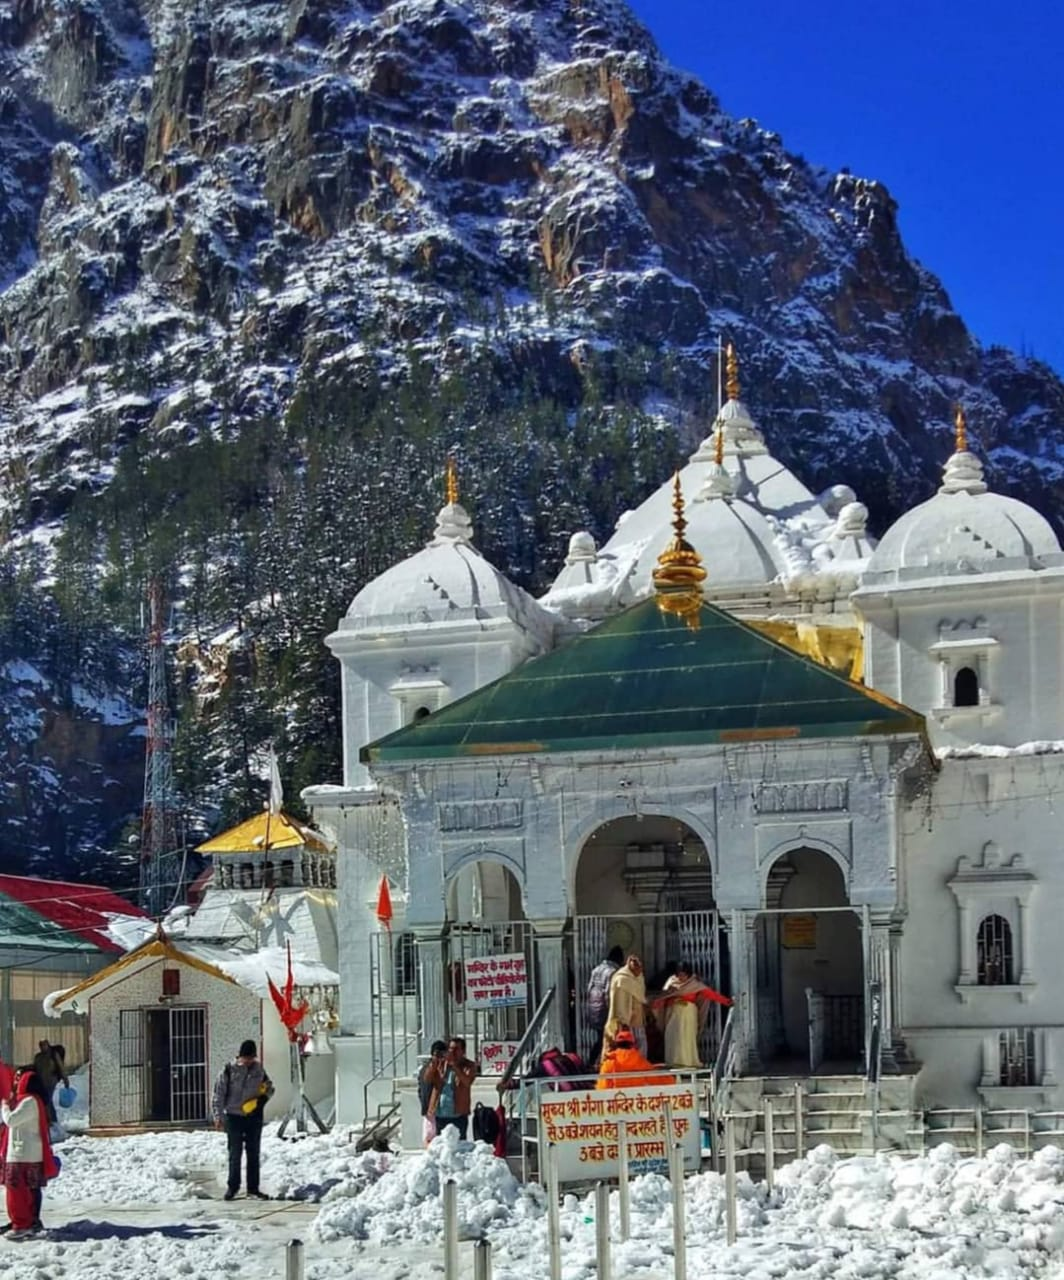 Bus hire for Char Dham, Mini bus on hire from delhi to Char dham